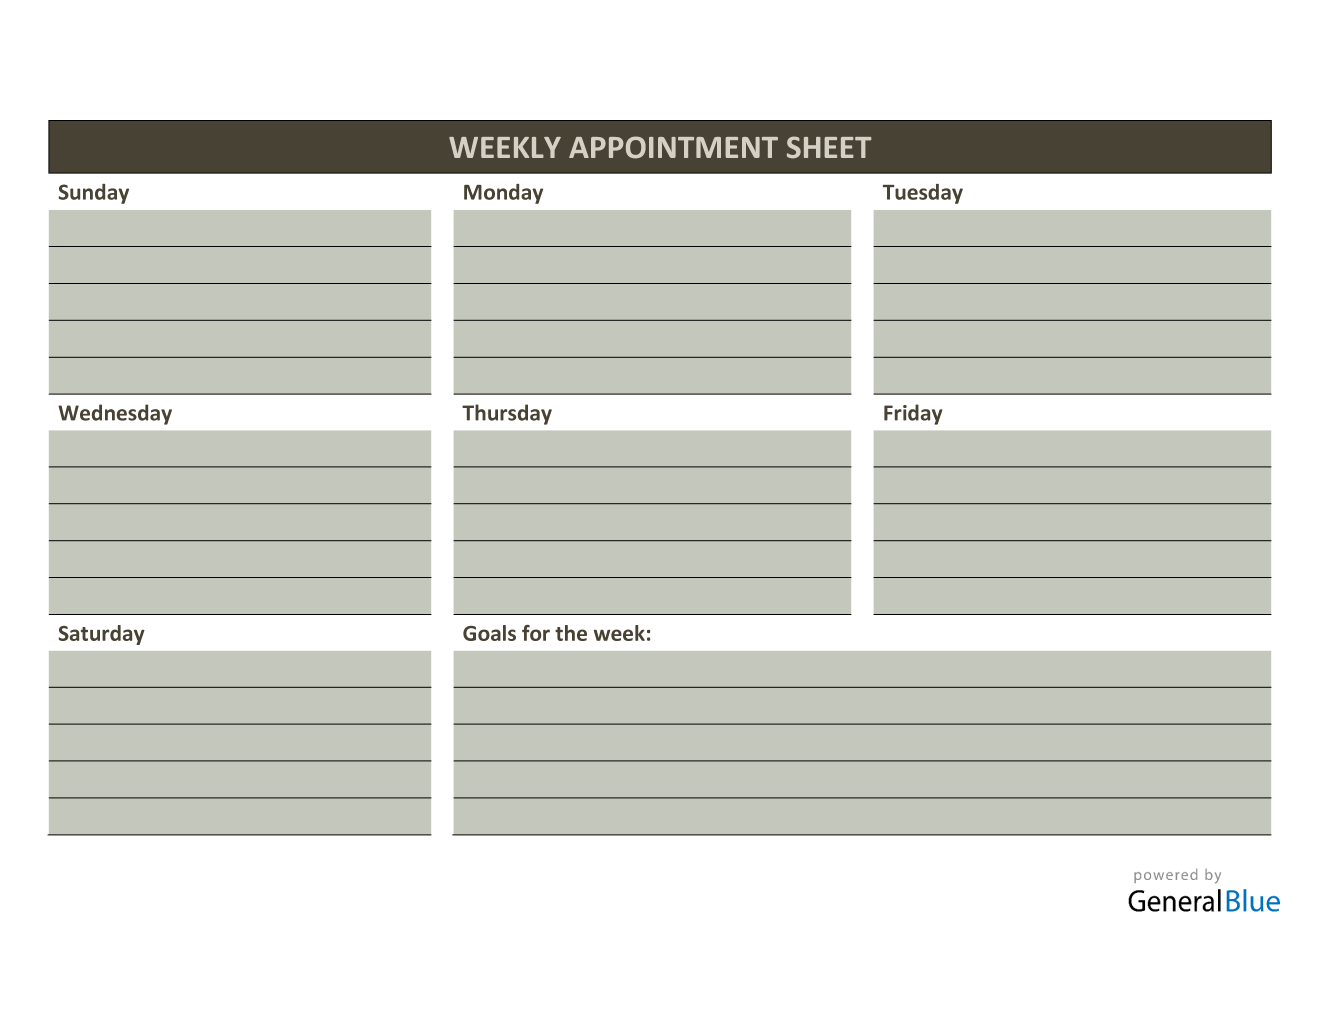 Weekly Appointment Sheet Template in Word (Colorful) Throughout Appointment Sheet Template Word